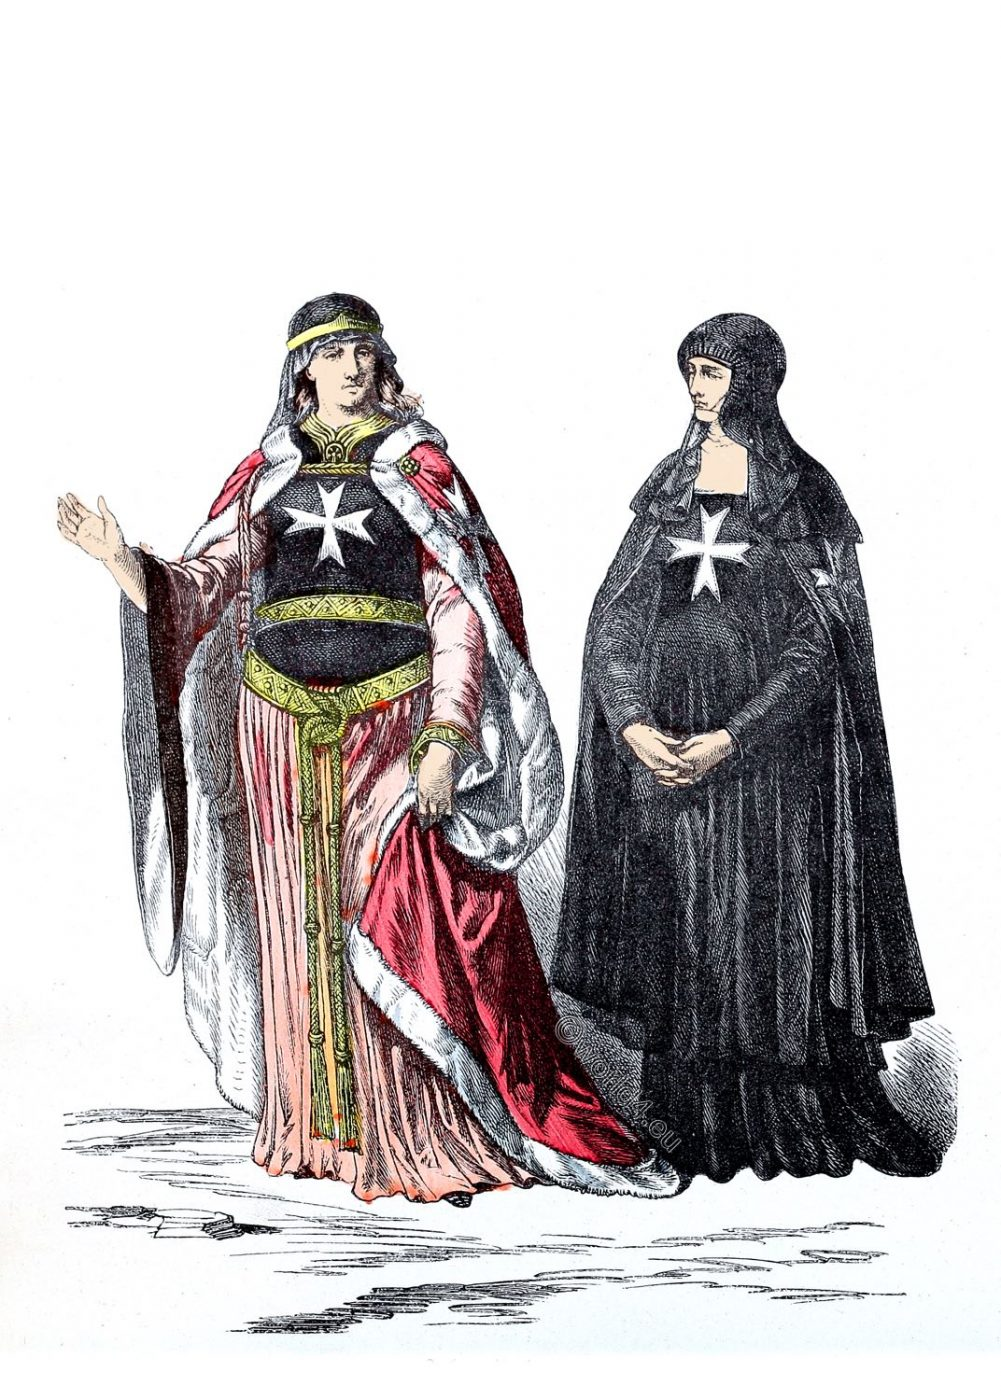 Nuns, hospitaller, costume, habit, Order, St John, Malta, 11th century, Crusade, Middle ages,